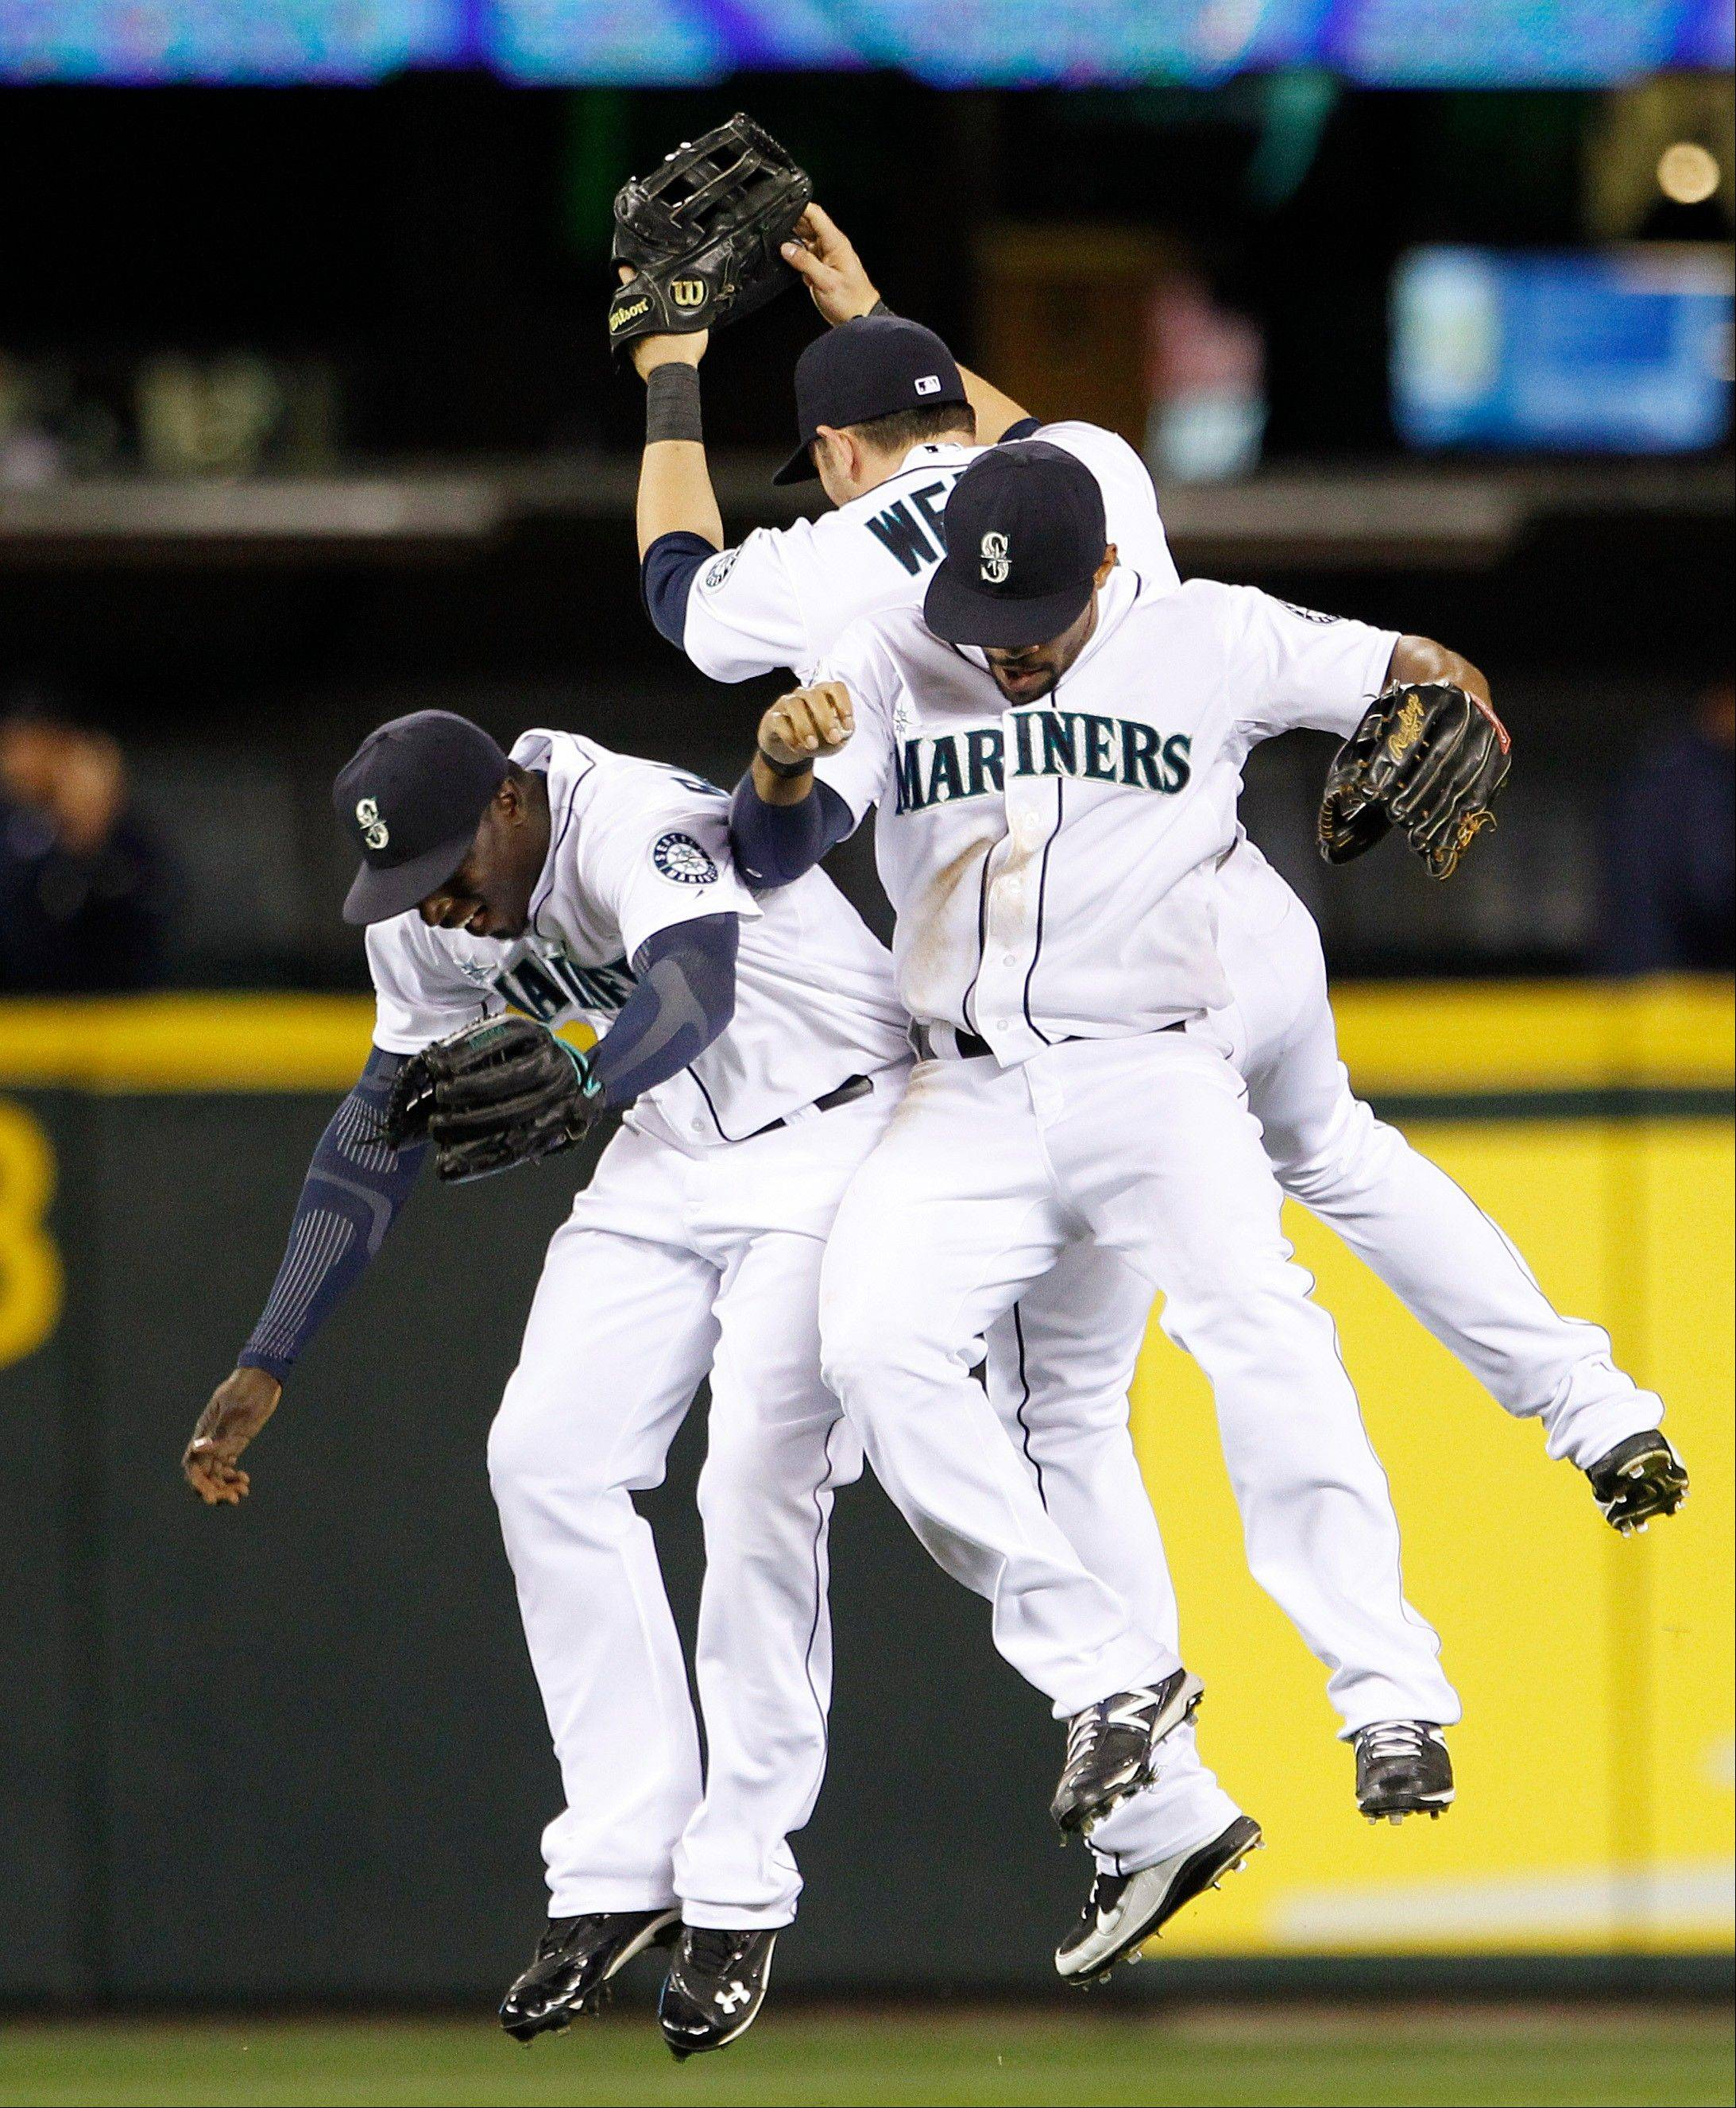 Seattle Mariners outfielders Trayvon Robinson, left, Casper Wells and Eric Thames celebrate after the team beat the Boston Red Sox on Wednesday at home.